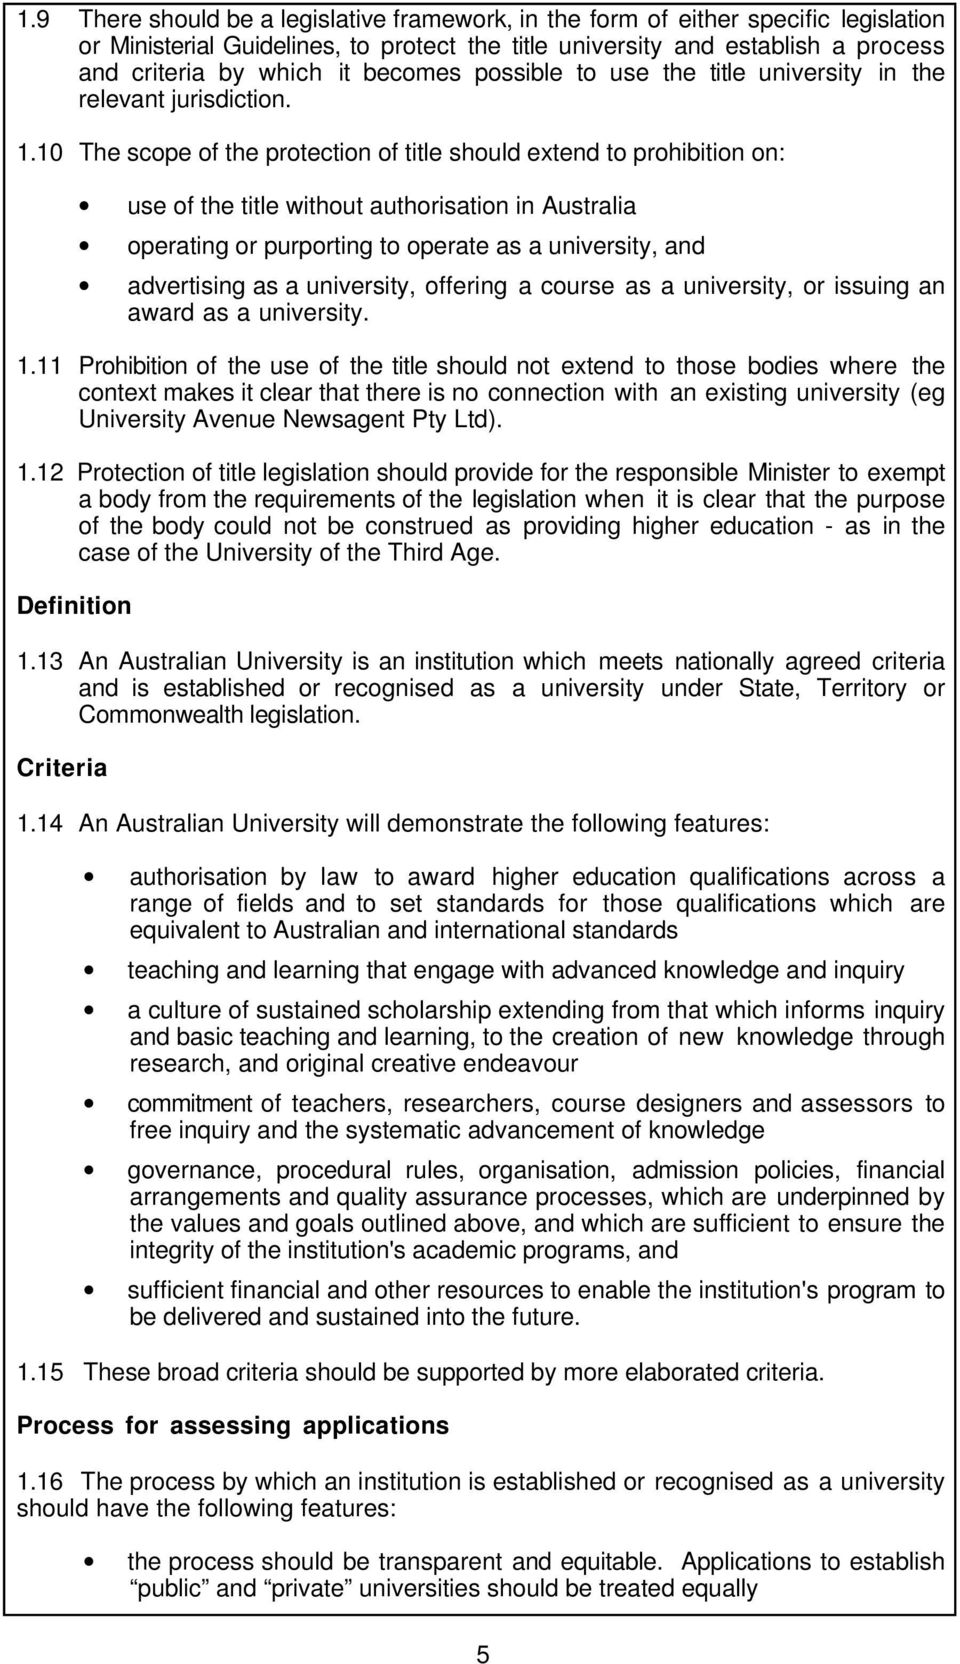 10 The scope of the protection of title should extend to prohibition on: use of the title without authorisation in Australia operating or purporting to operate as a university, and advertising as a